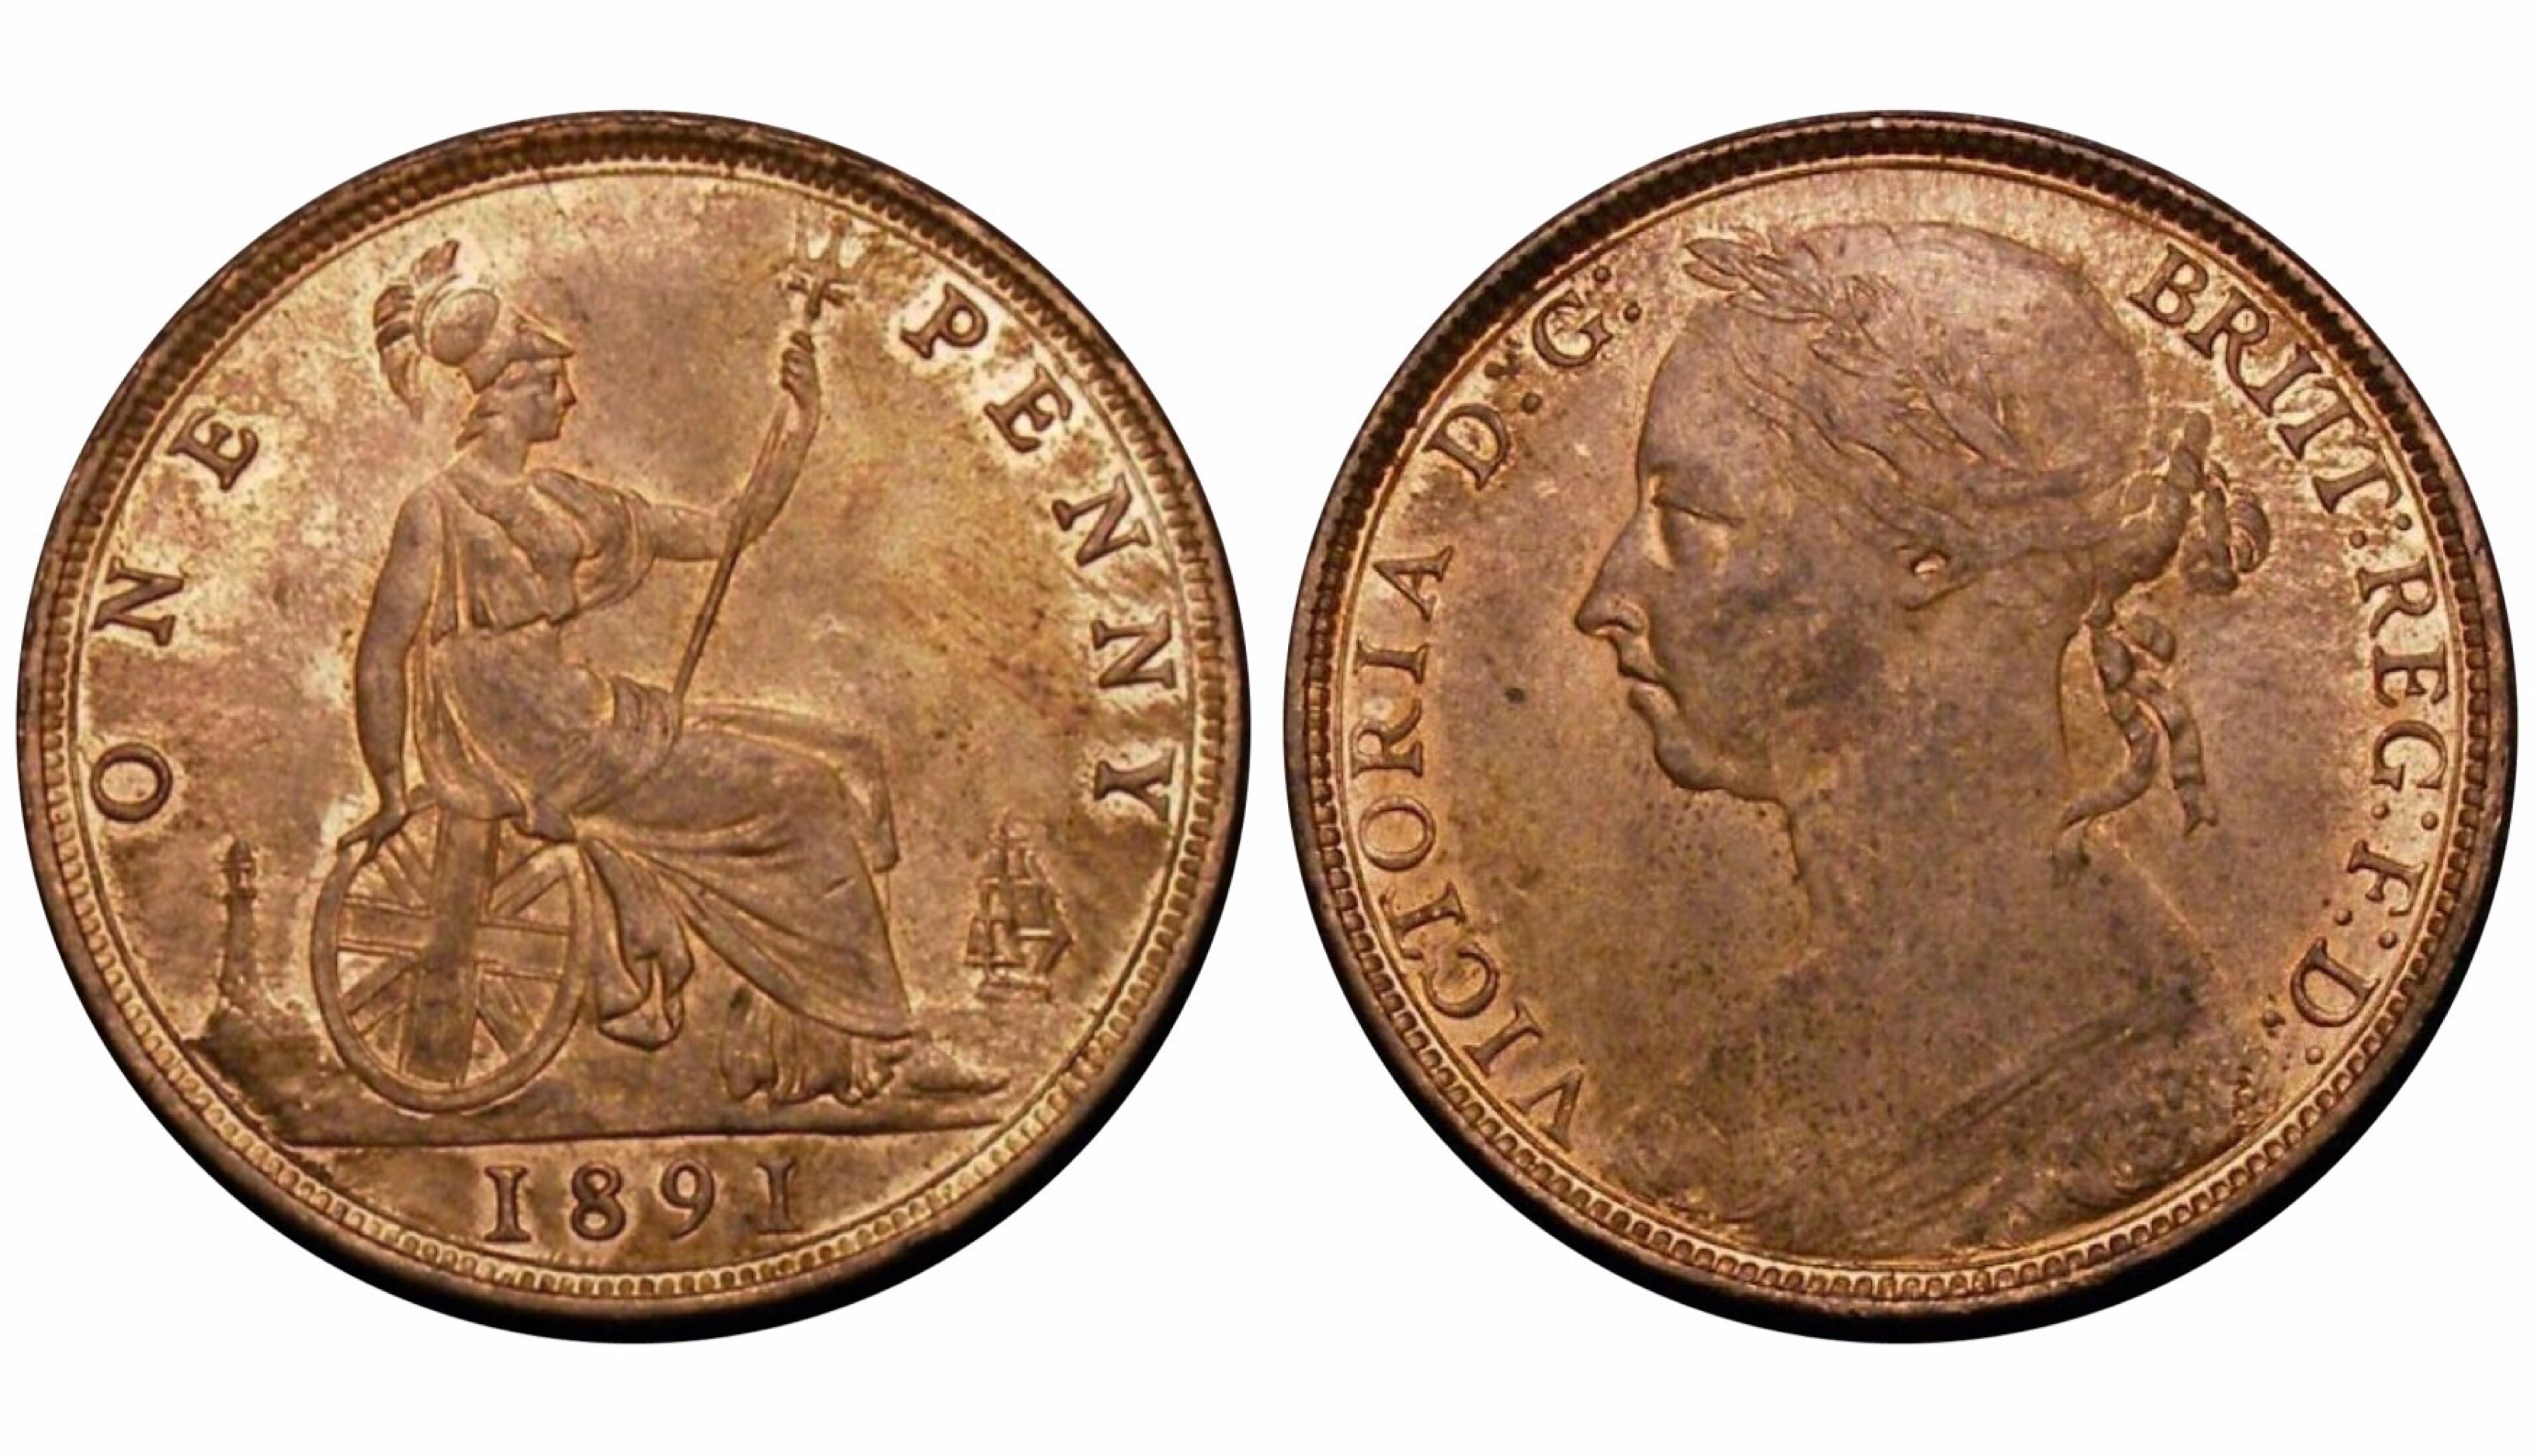 1891 Penny, UNC, CGS 80(MS 64), Victoria, Gouby BP1891AB, UIN 32567